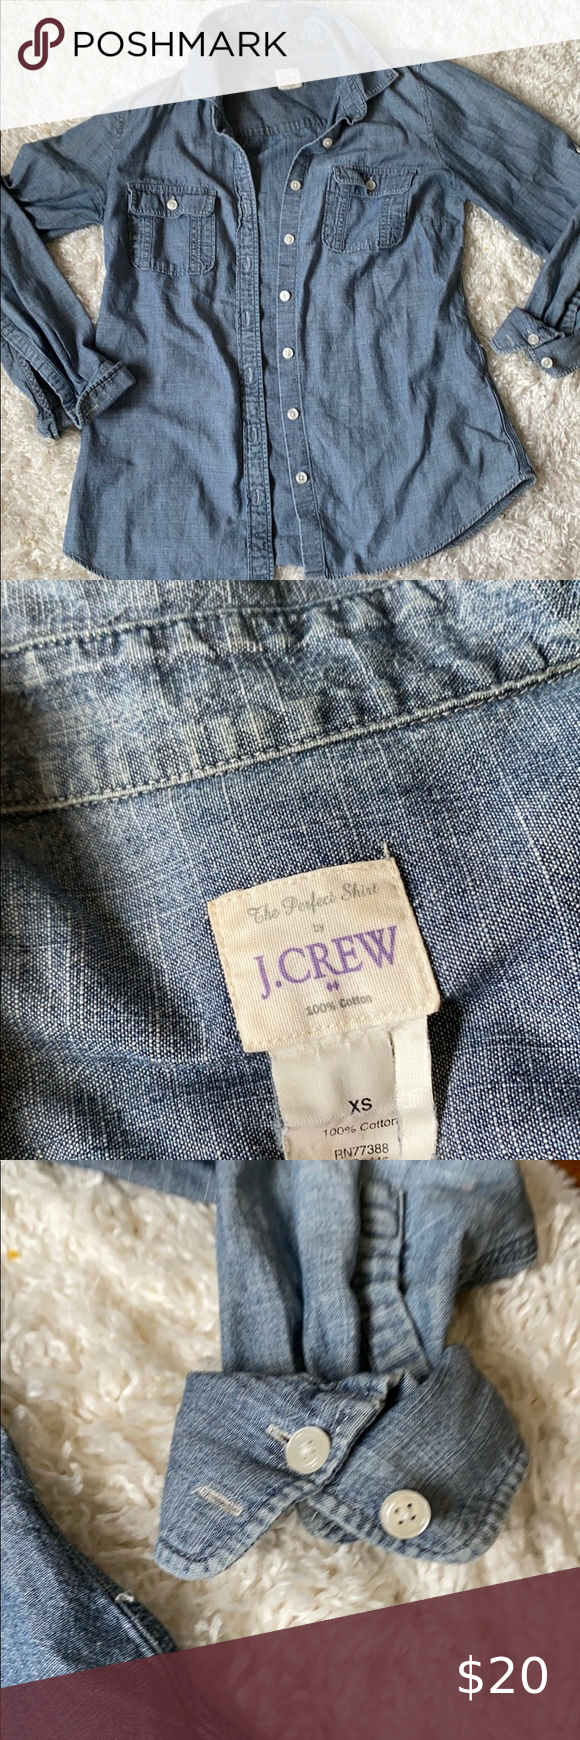 J. Crew blue Jean button up shirt xs J. Crew Blue jean material Xs Offers and bundles welcome J. Cre